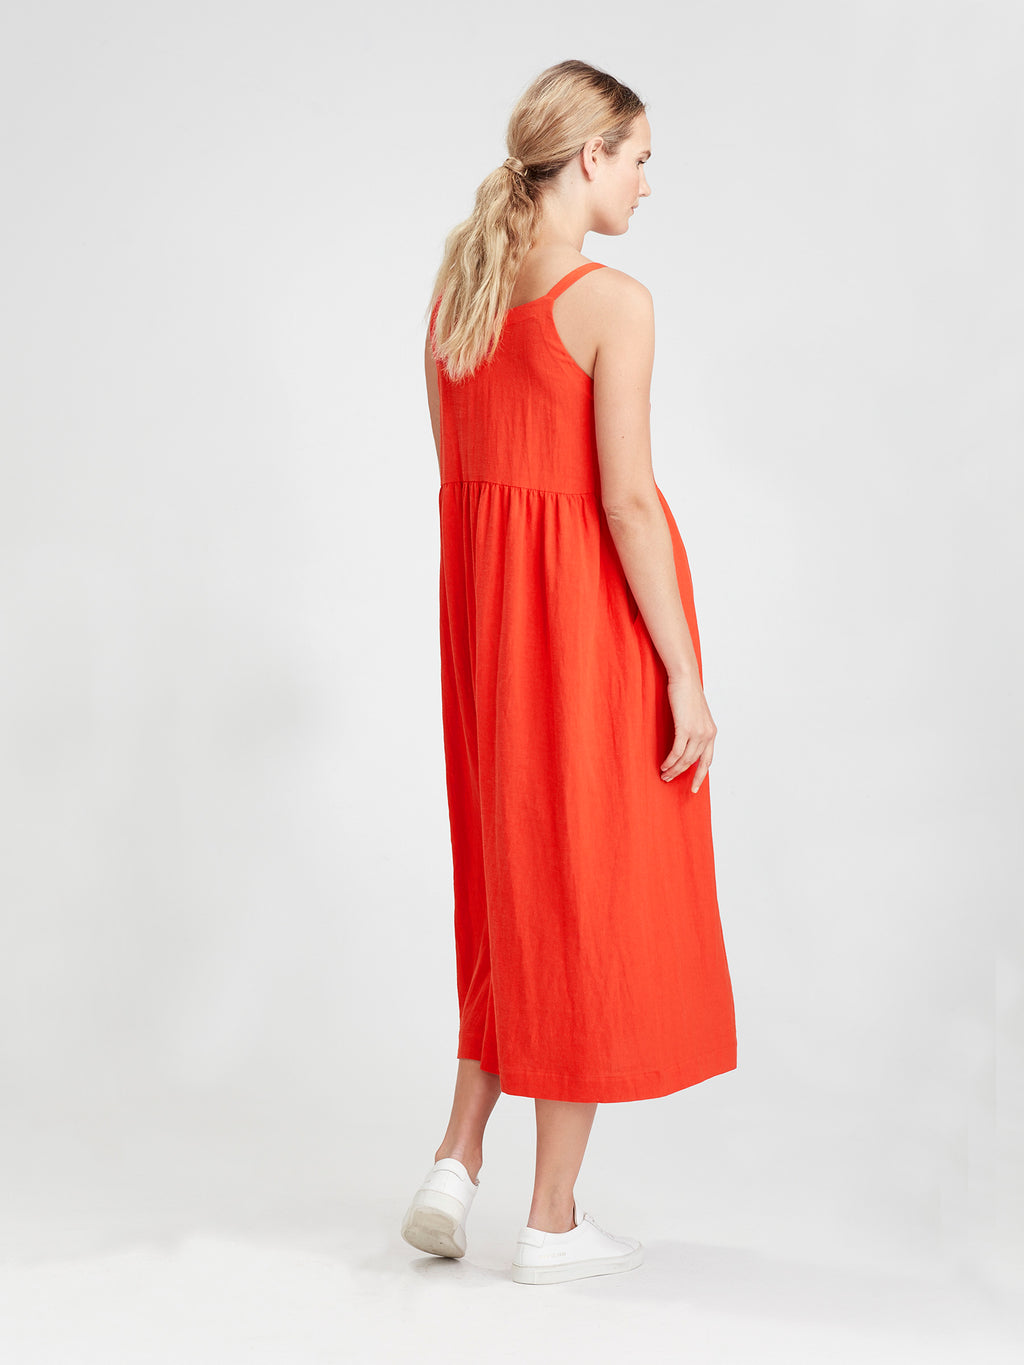 Palm Pinafore (Soft Crepe) Cherry